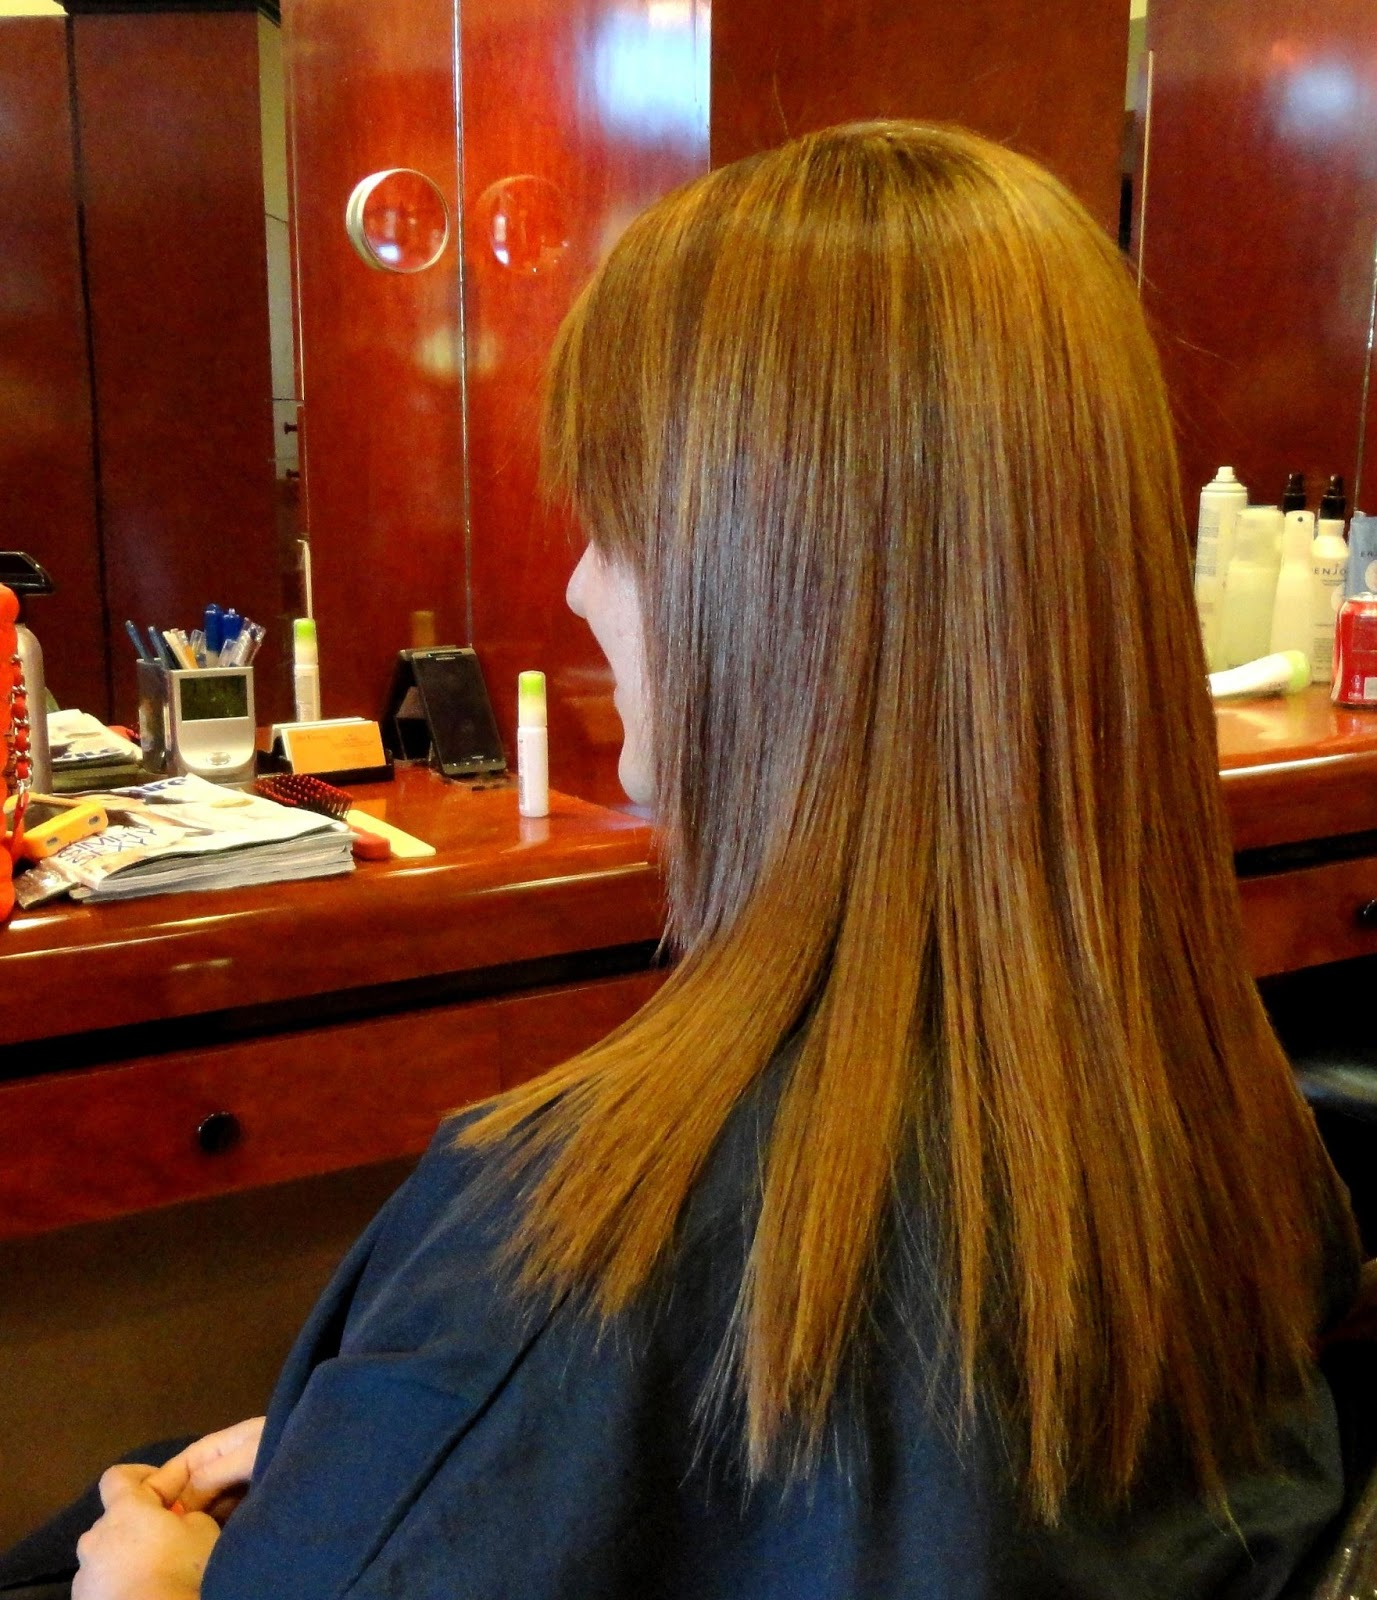 Japanese hair straightening treatment orange county irvine february 2013 - Salon straightening treatments ...